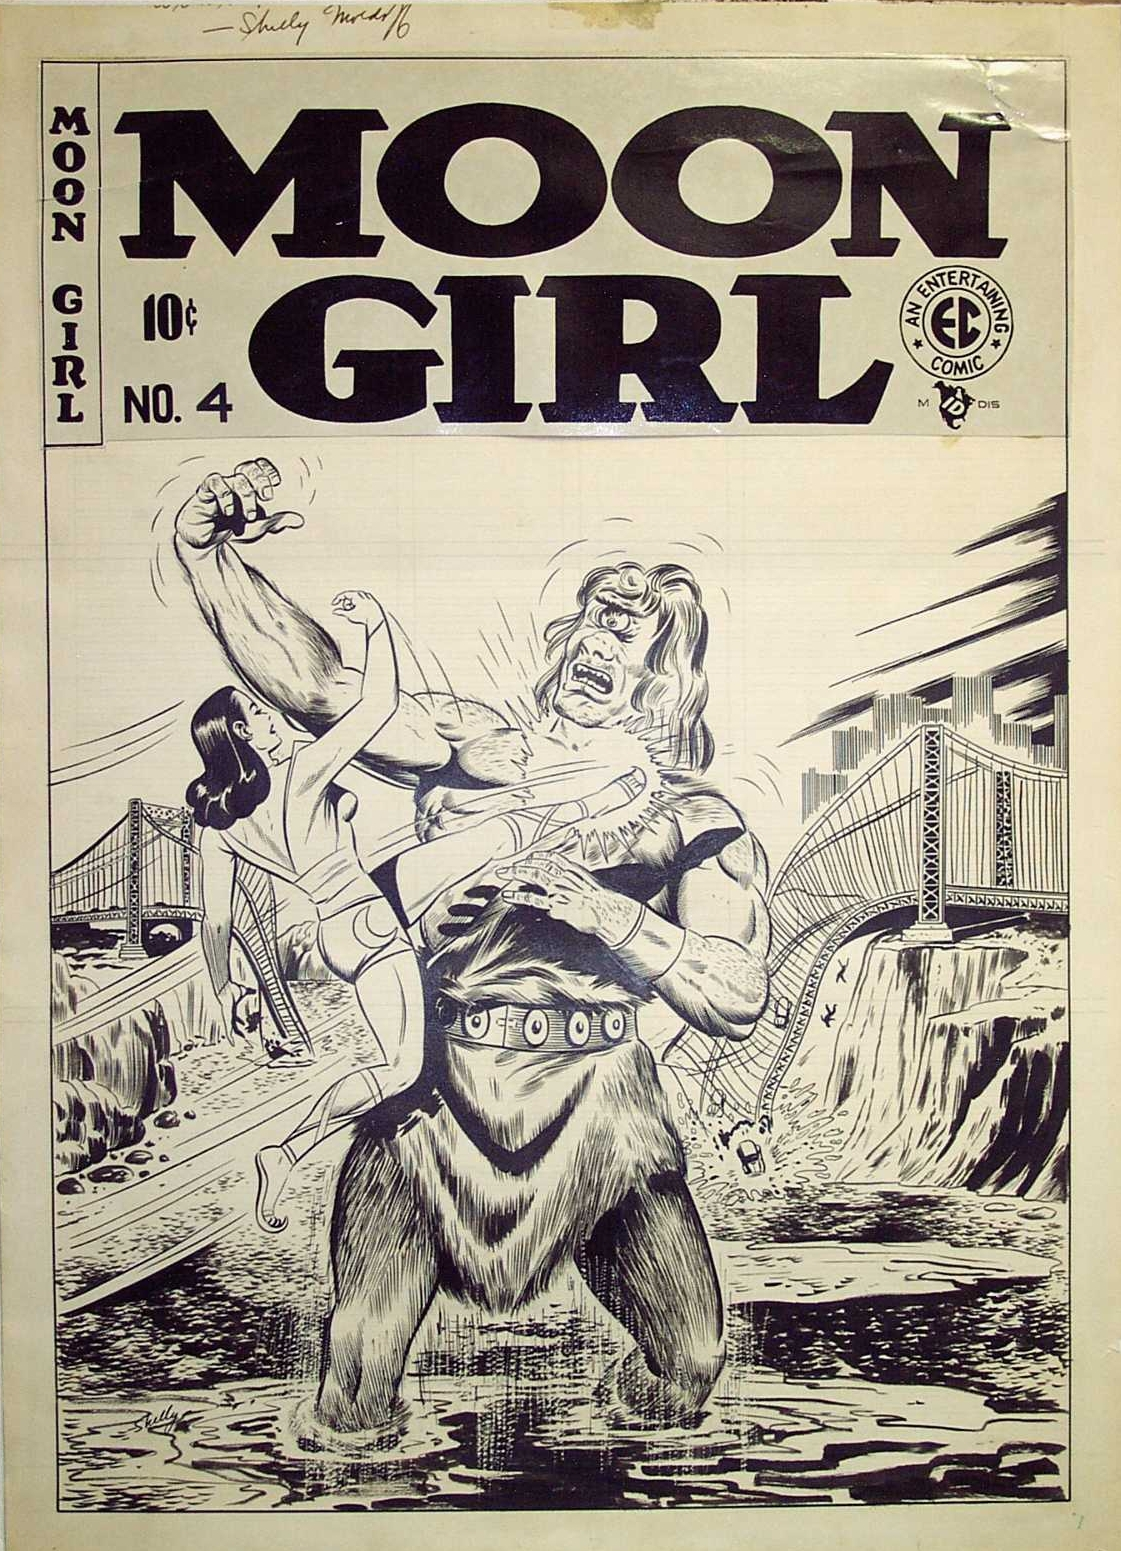 Moon Girl #4 original cover art by Sheldon Moldoff.